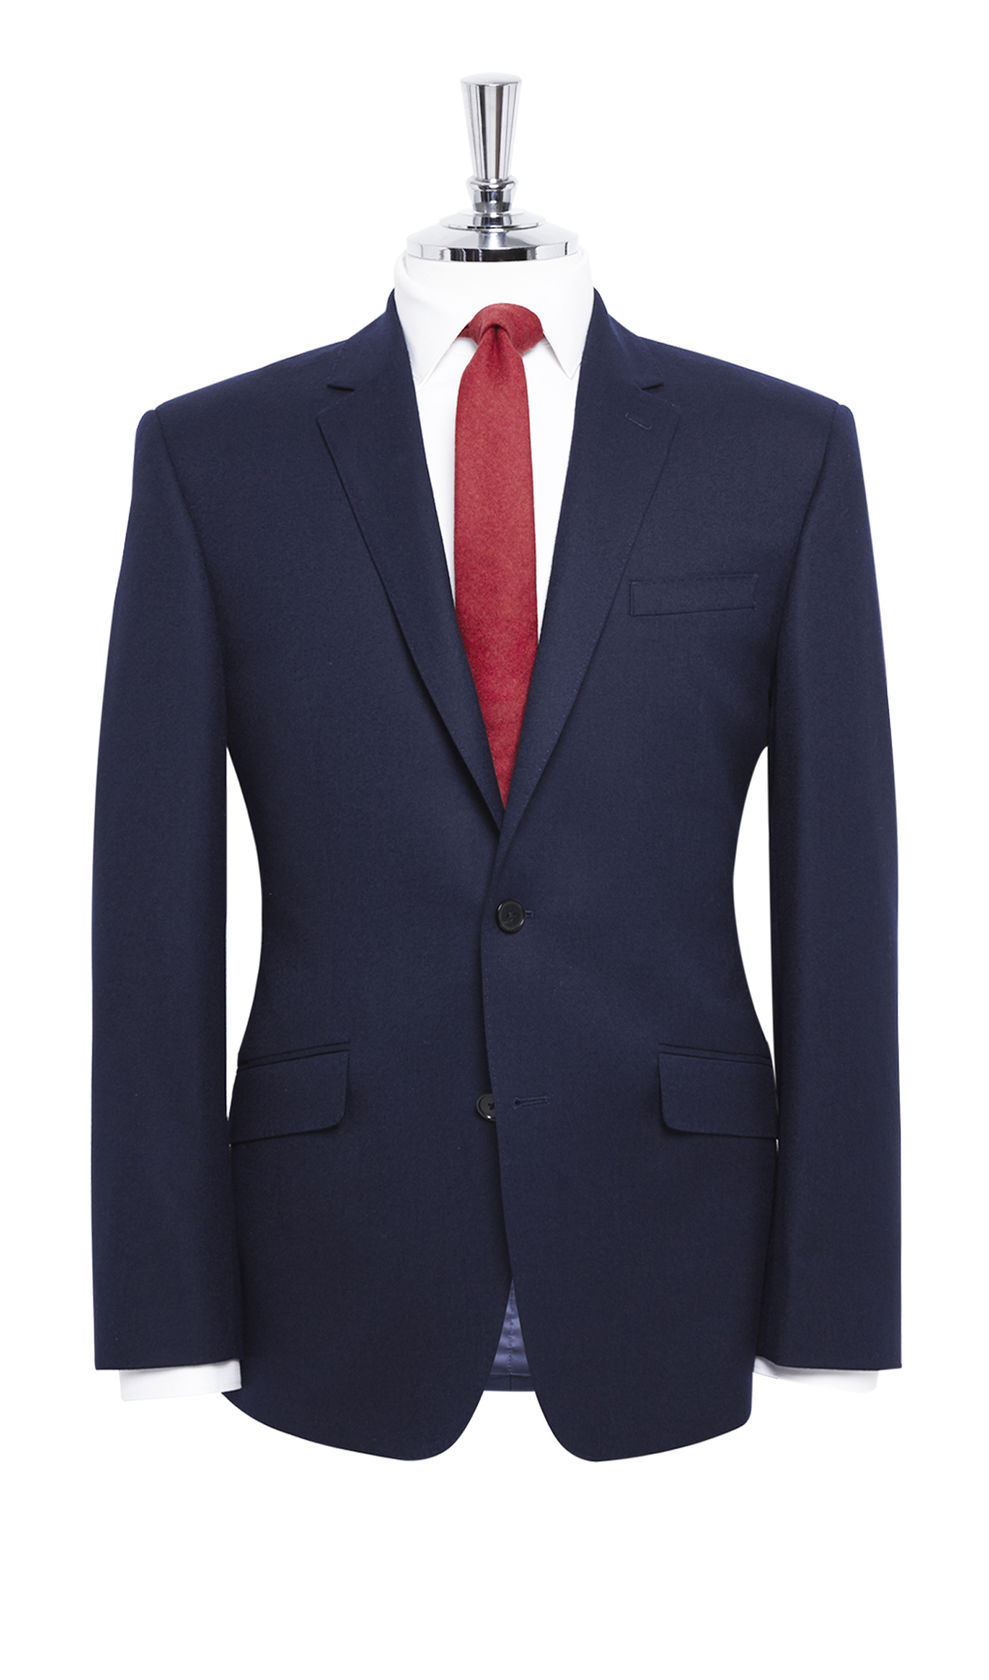 2 button suit, navy blue fabrics, bespoke mens suit wear